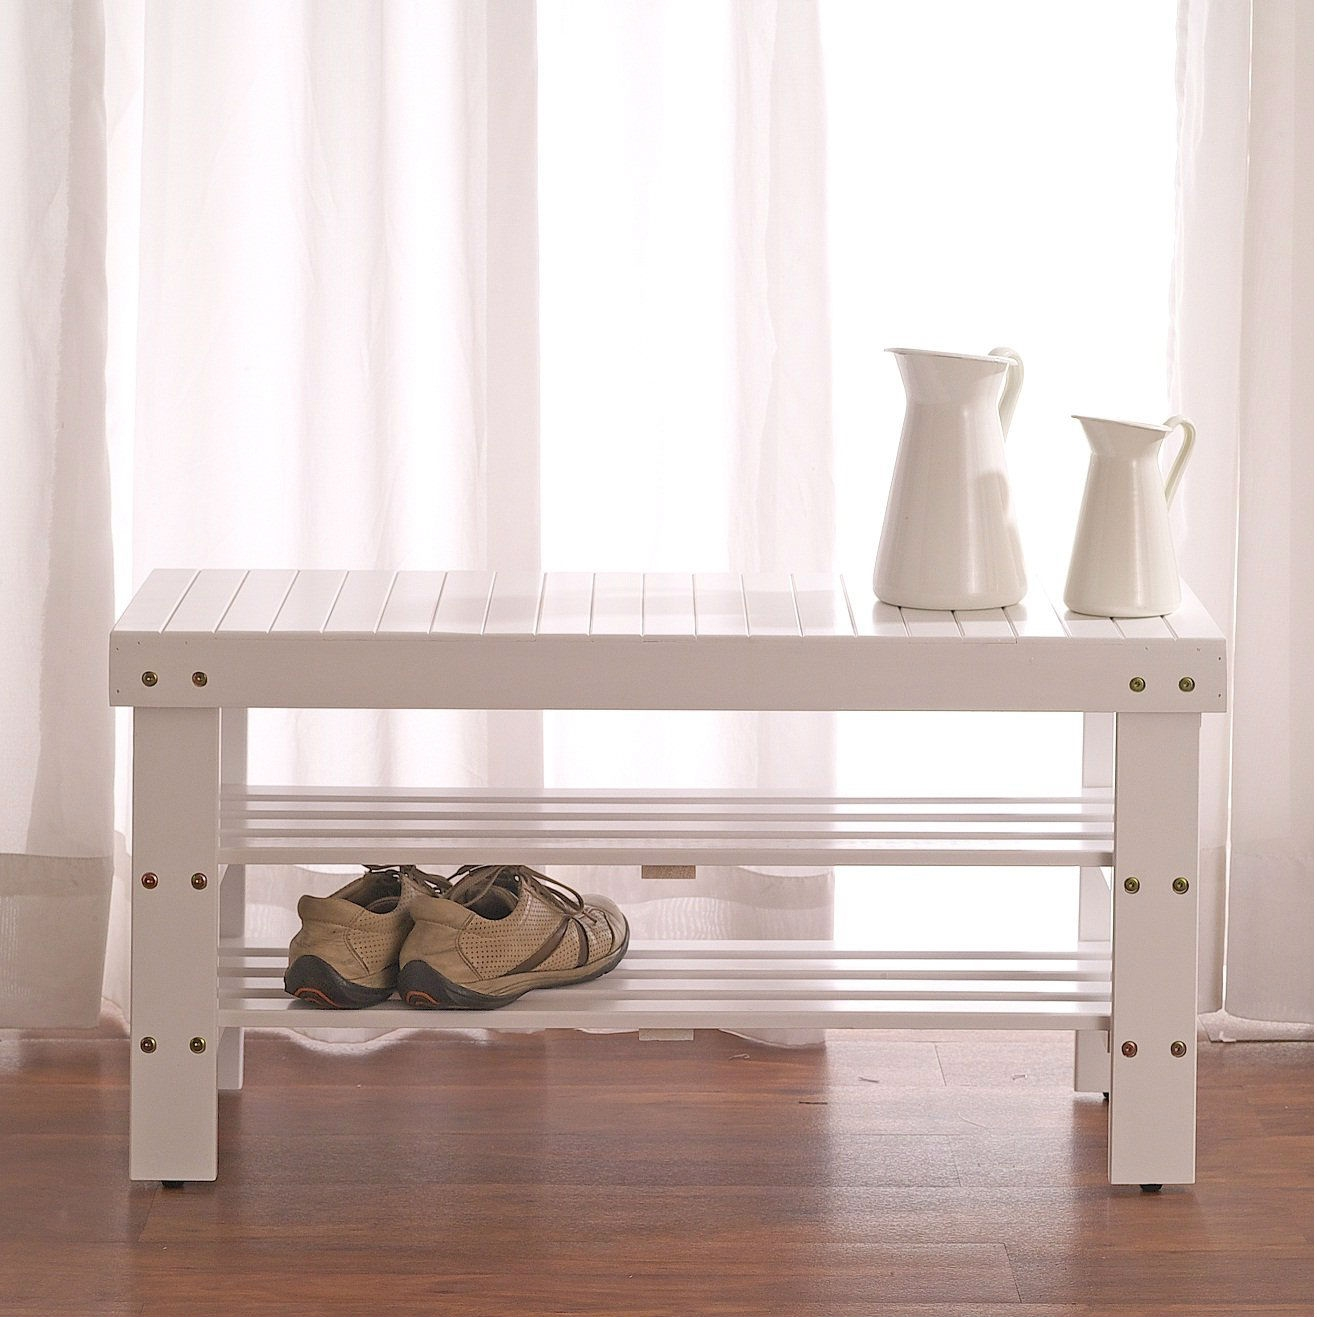 Solid Wood Shoe Rack Entryway Storage Bench in White, WSB519846 :  In the entryway or bedroom, this Solid Wood Shoe Rack Entryway Storage Bench in White is a place to pause and put your shoes on. It can add more storage to your home without sacrificing space. Durable solid wood frame, display and store up to 10 pairs of shoes. If you wish, you can sit on the top for a spell or use it as storage space too. Photo May Slightly Different From Actual Item in Terms of Color Due to the Lighting During Photo Shooting or the Monitor's Display.